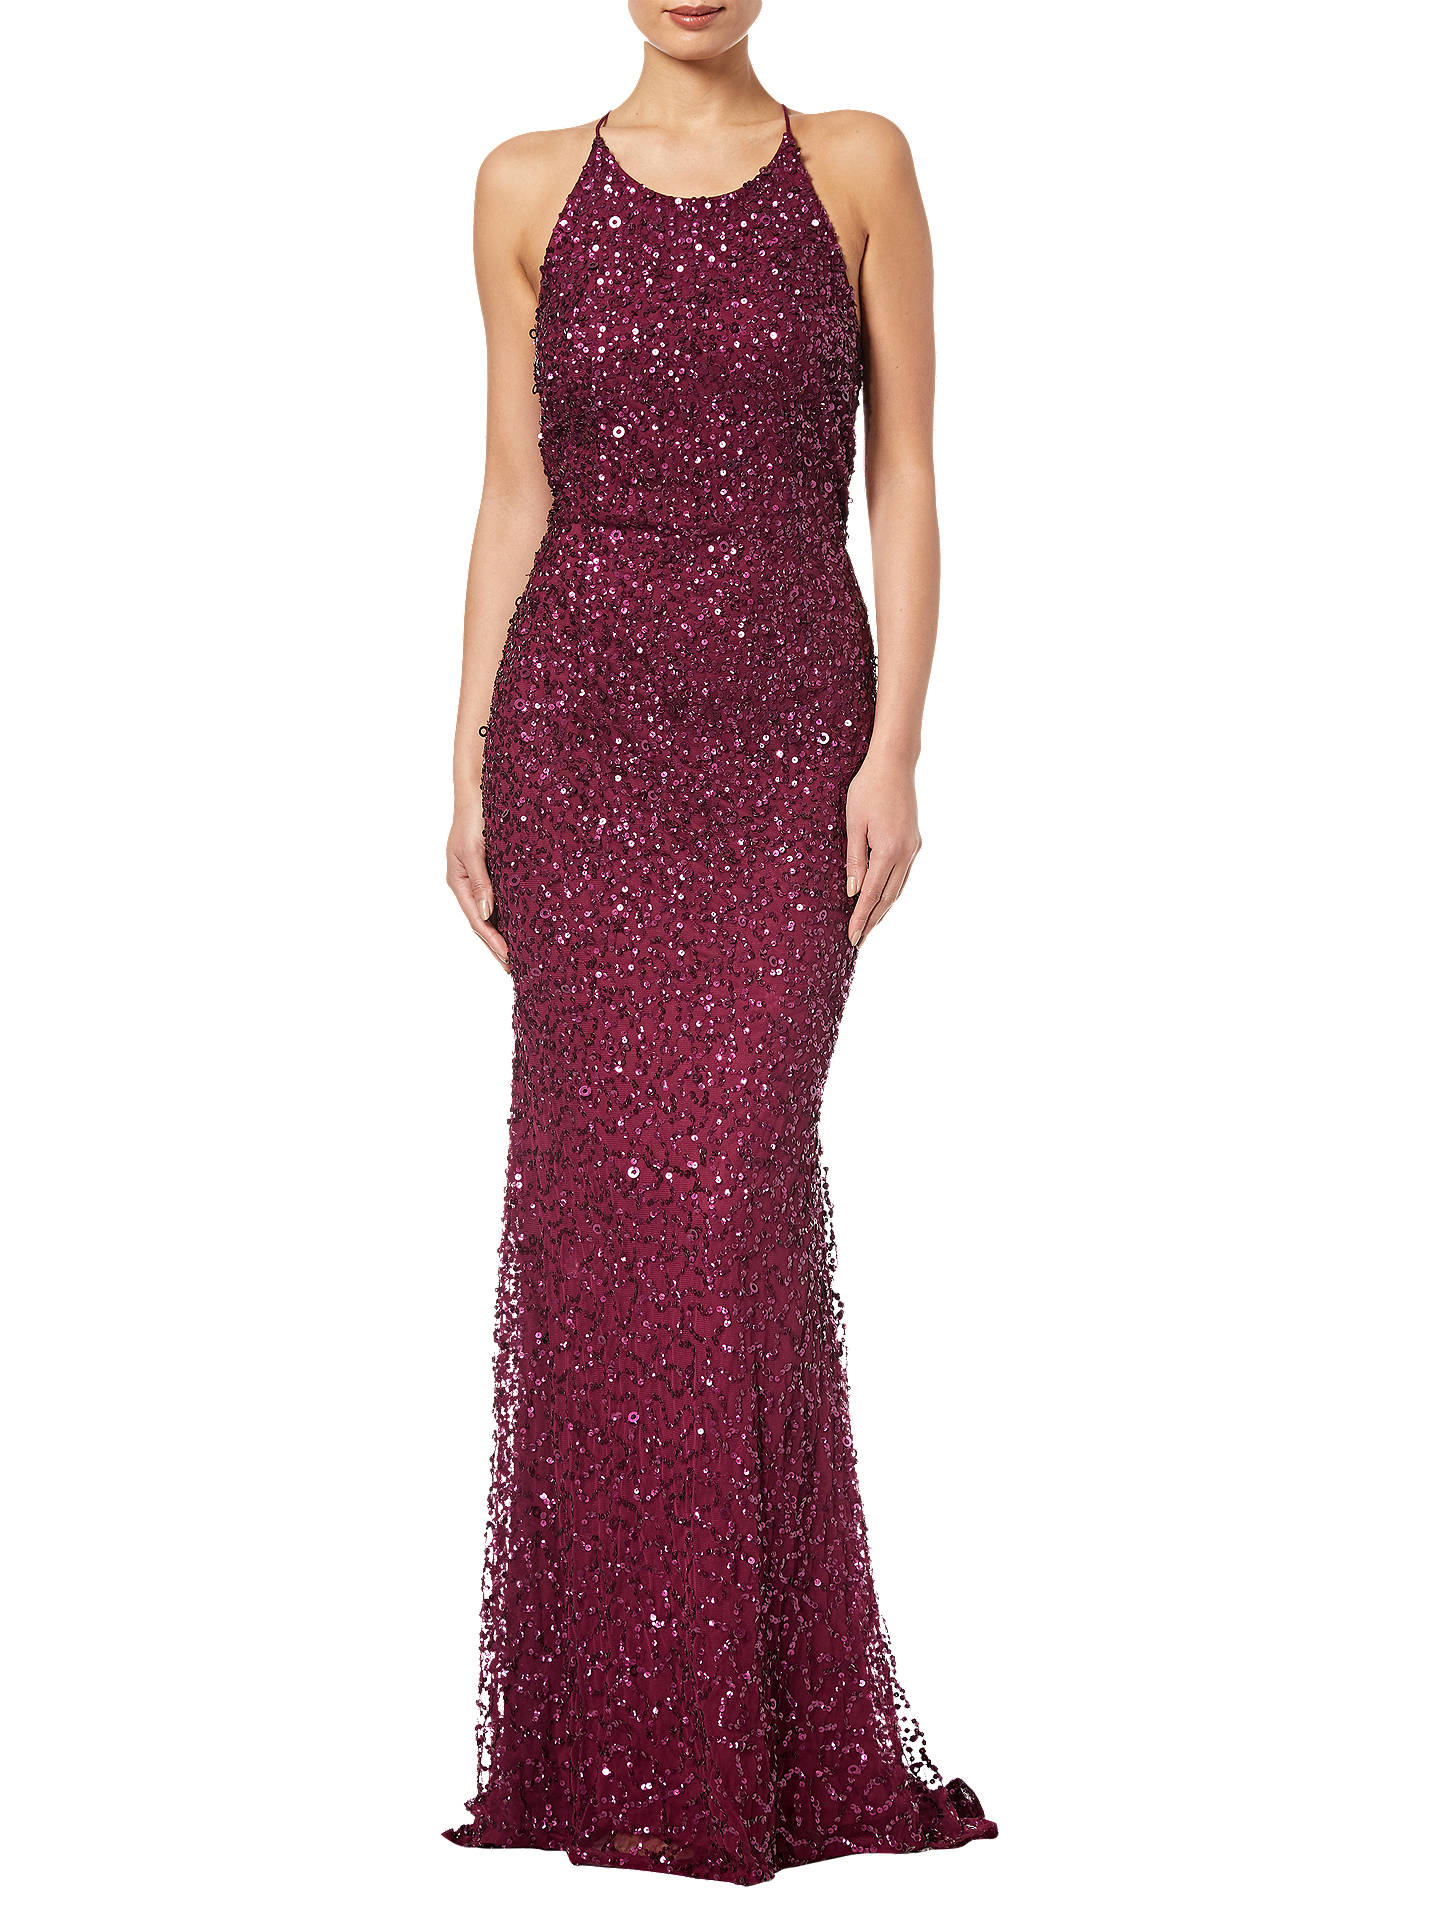 736125cbcc Buy Adrianna Papell Low Back Crunchy Bead Dress